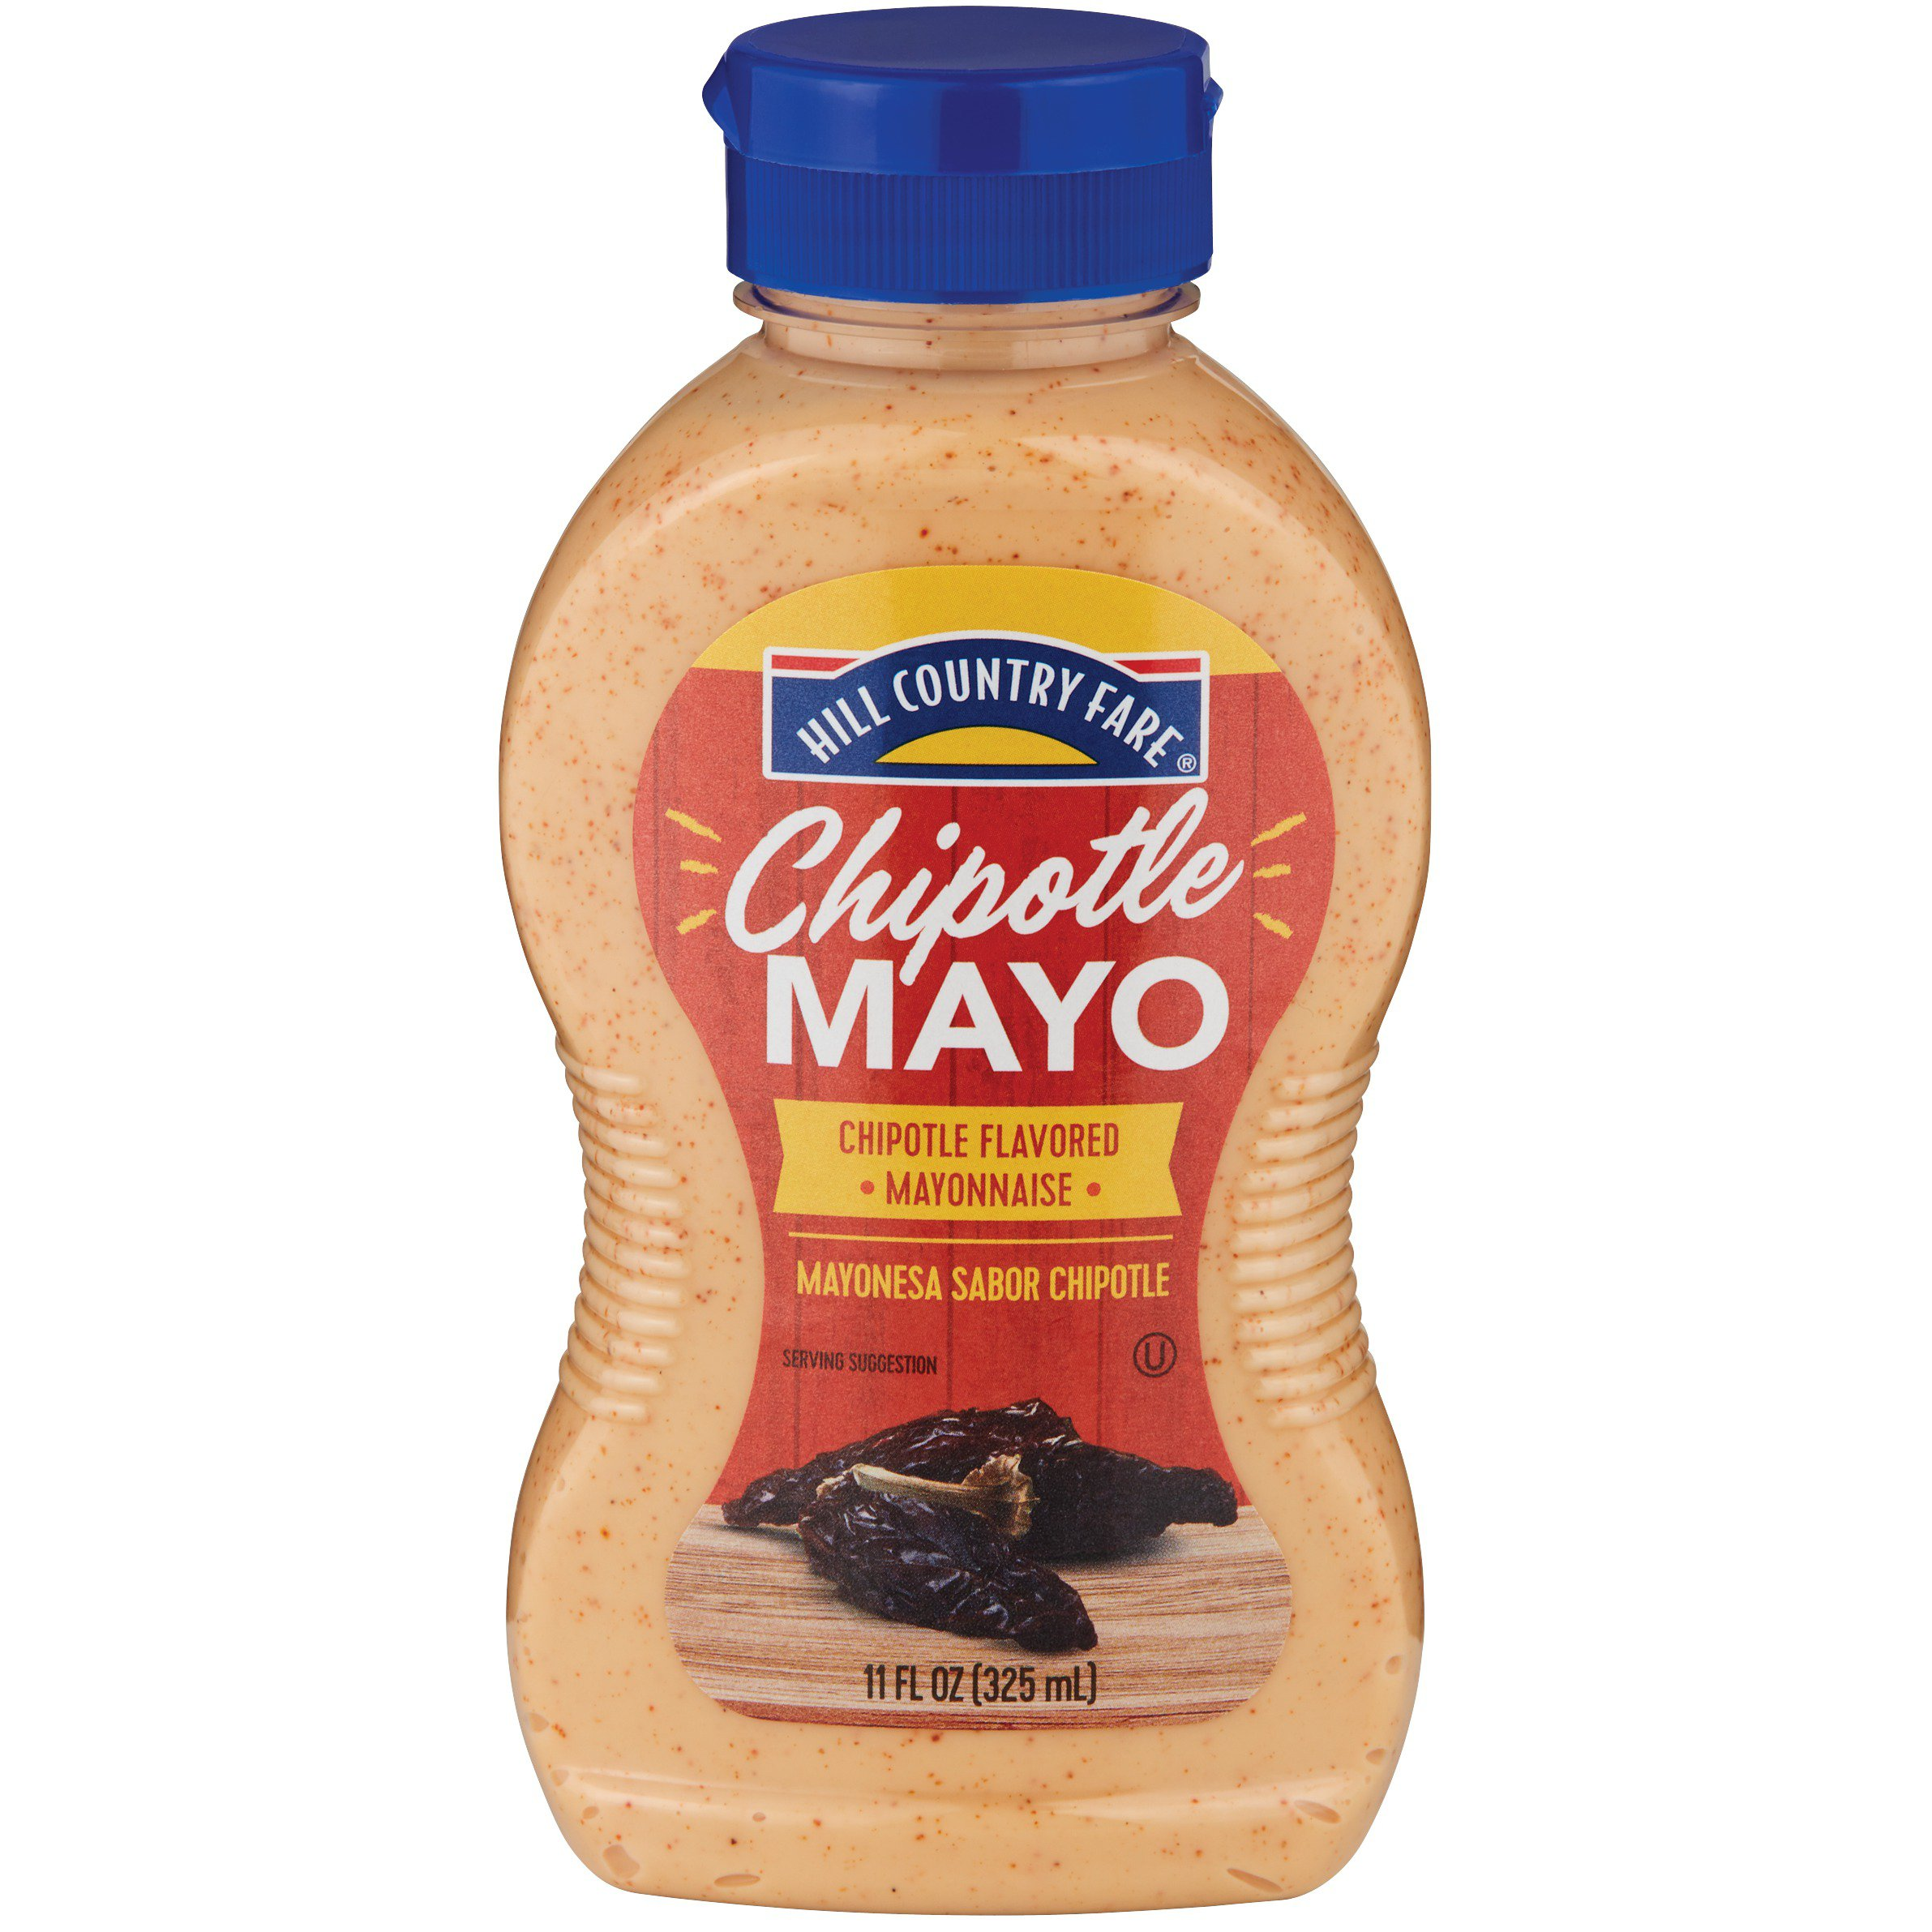 Hill Country Fare Chipotle Mayo Shop Mayonnaise Spreads At H E B